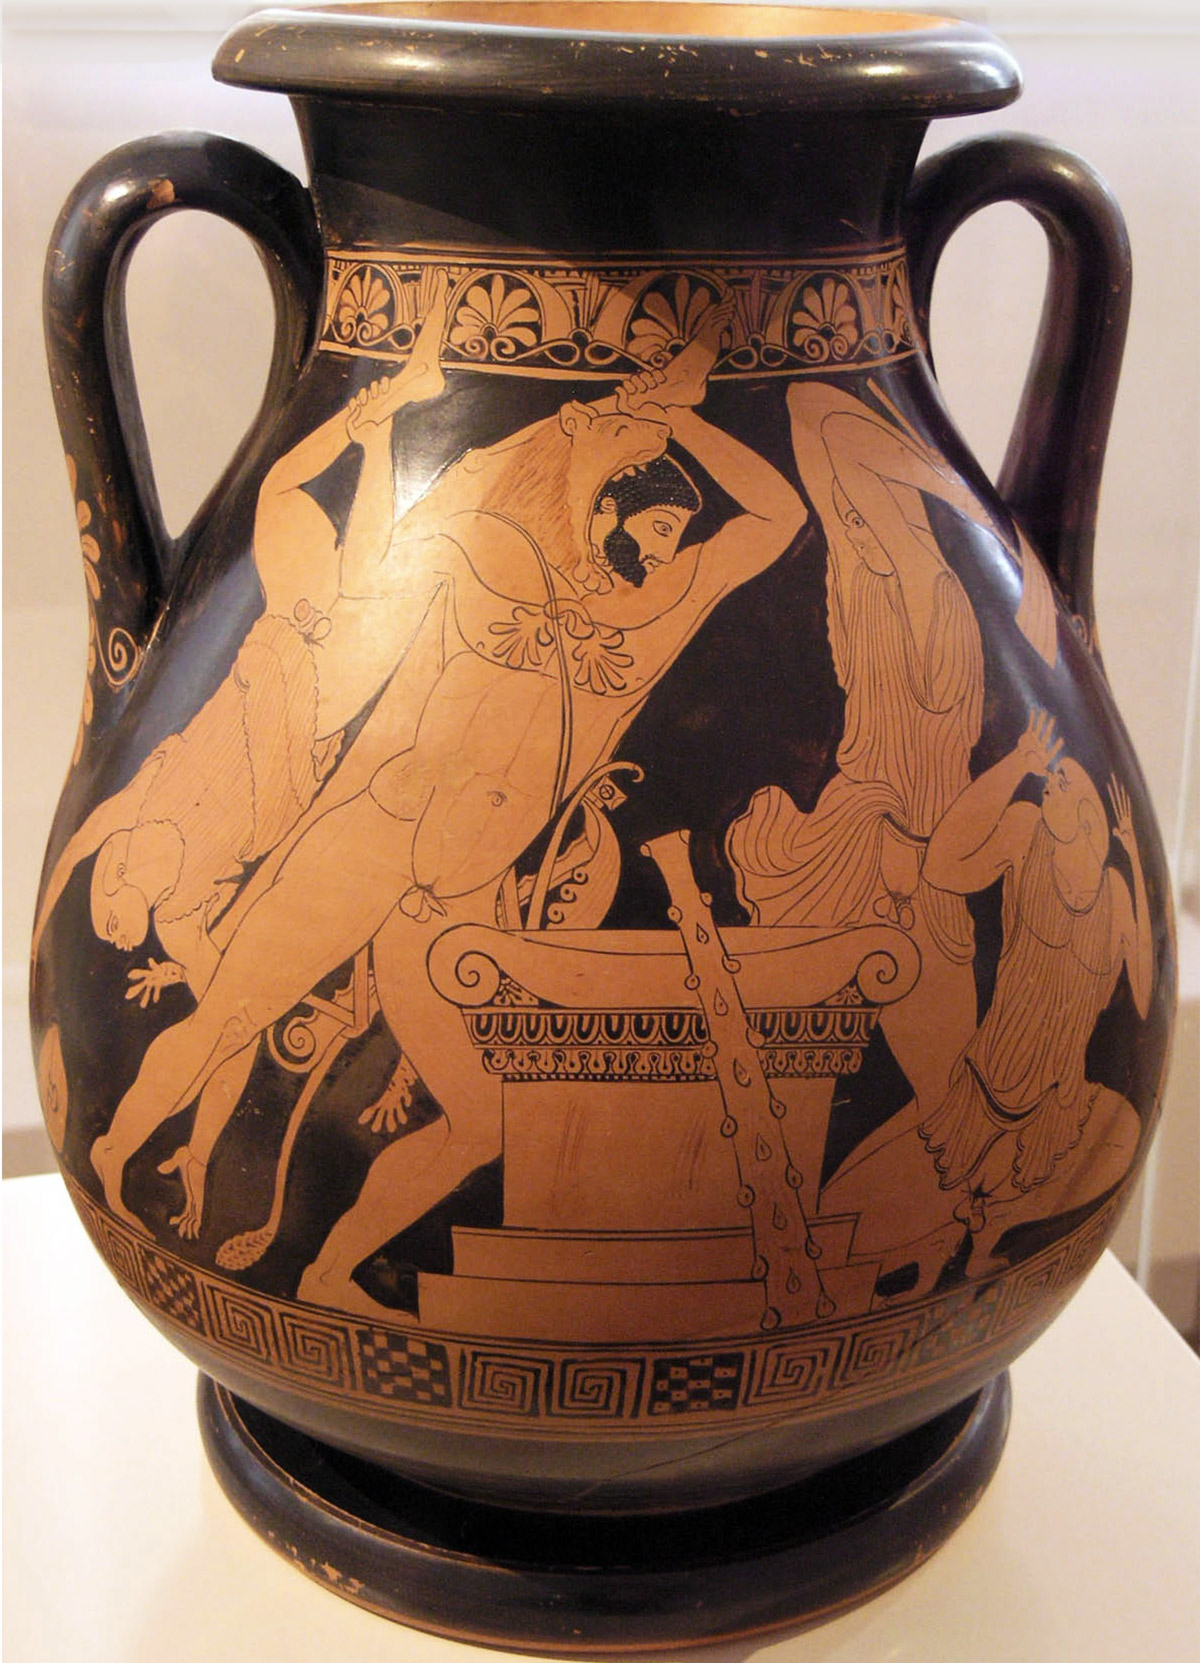 An ancient Greek vase in a display case shows Herkales battling a man with African features